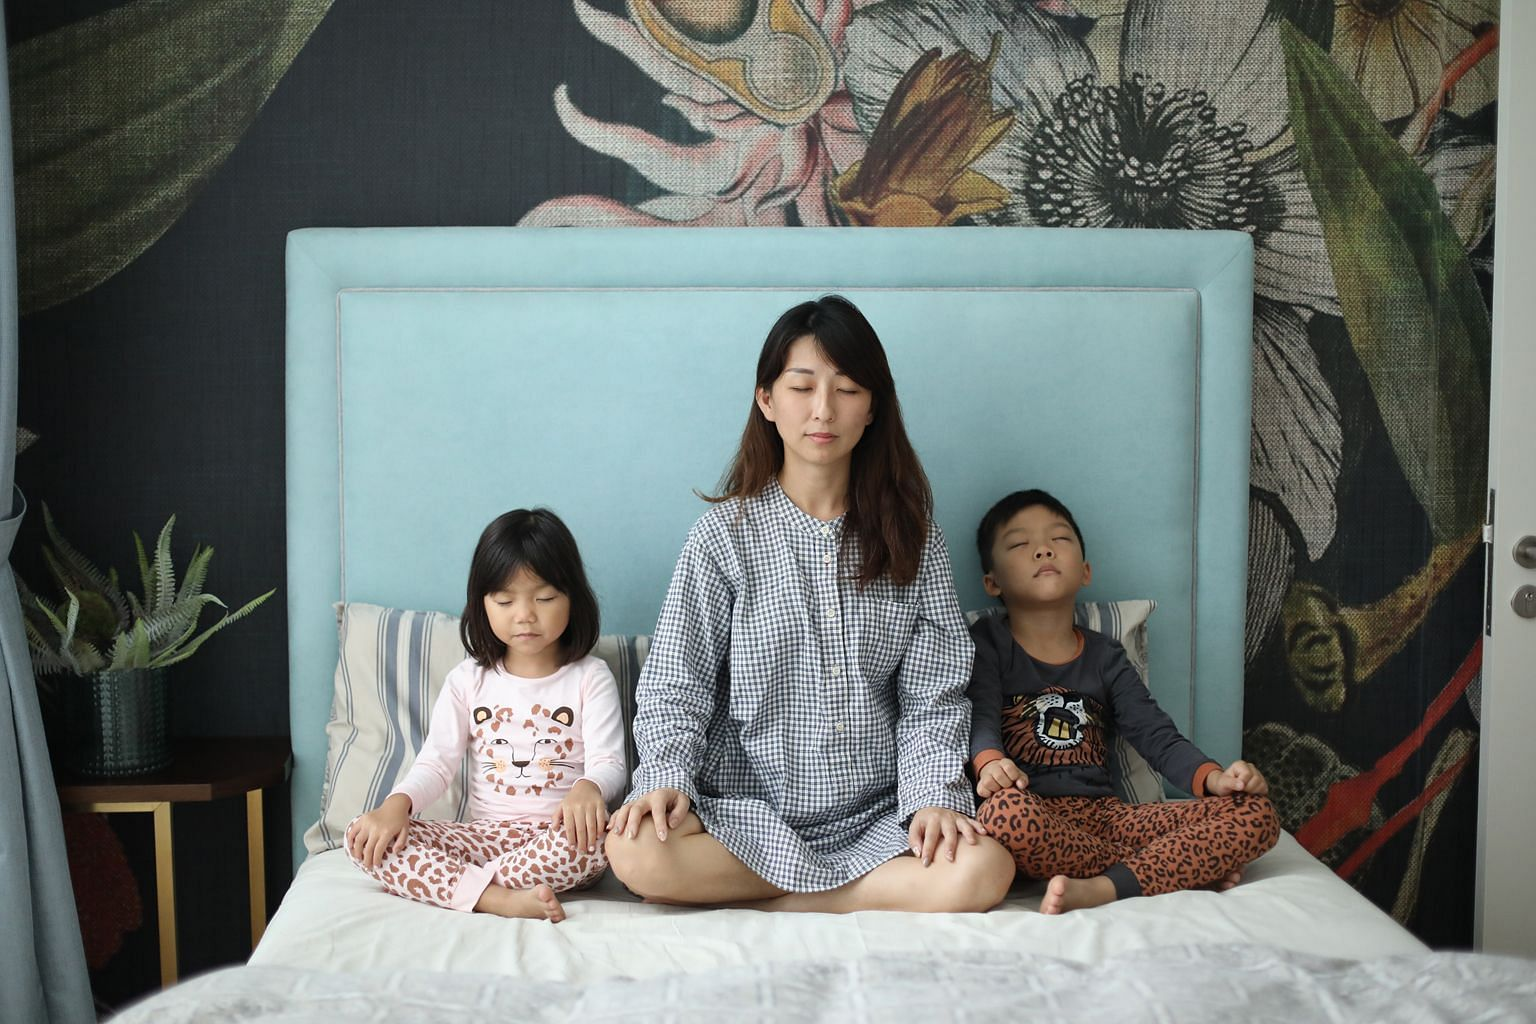 Ms Liang May practising meditation with her children Jing Faye and Ewan before sleep time.